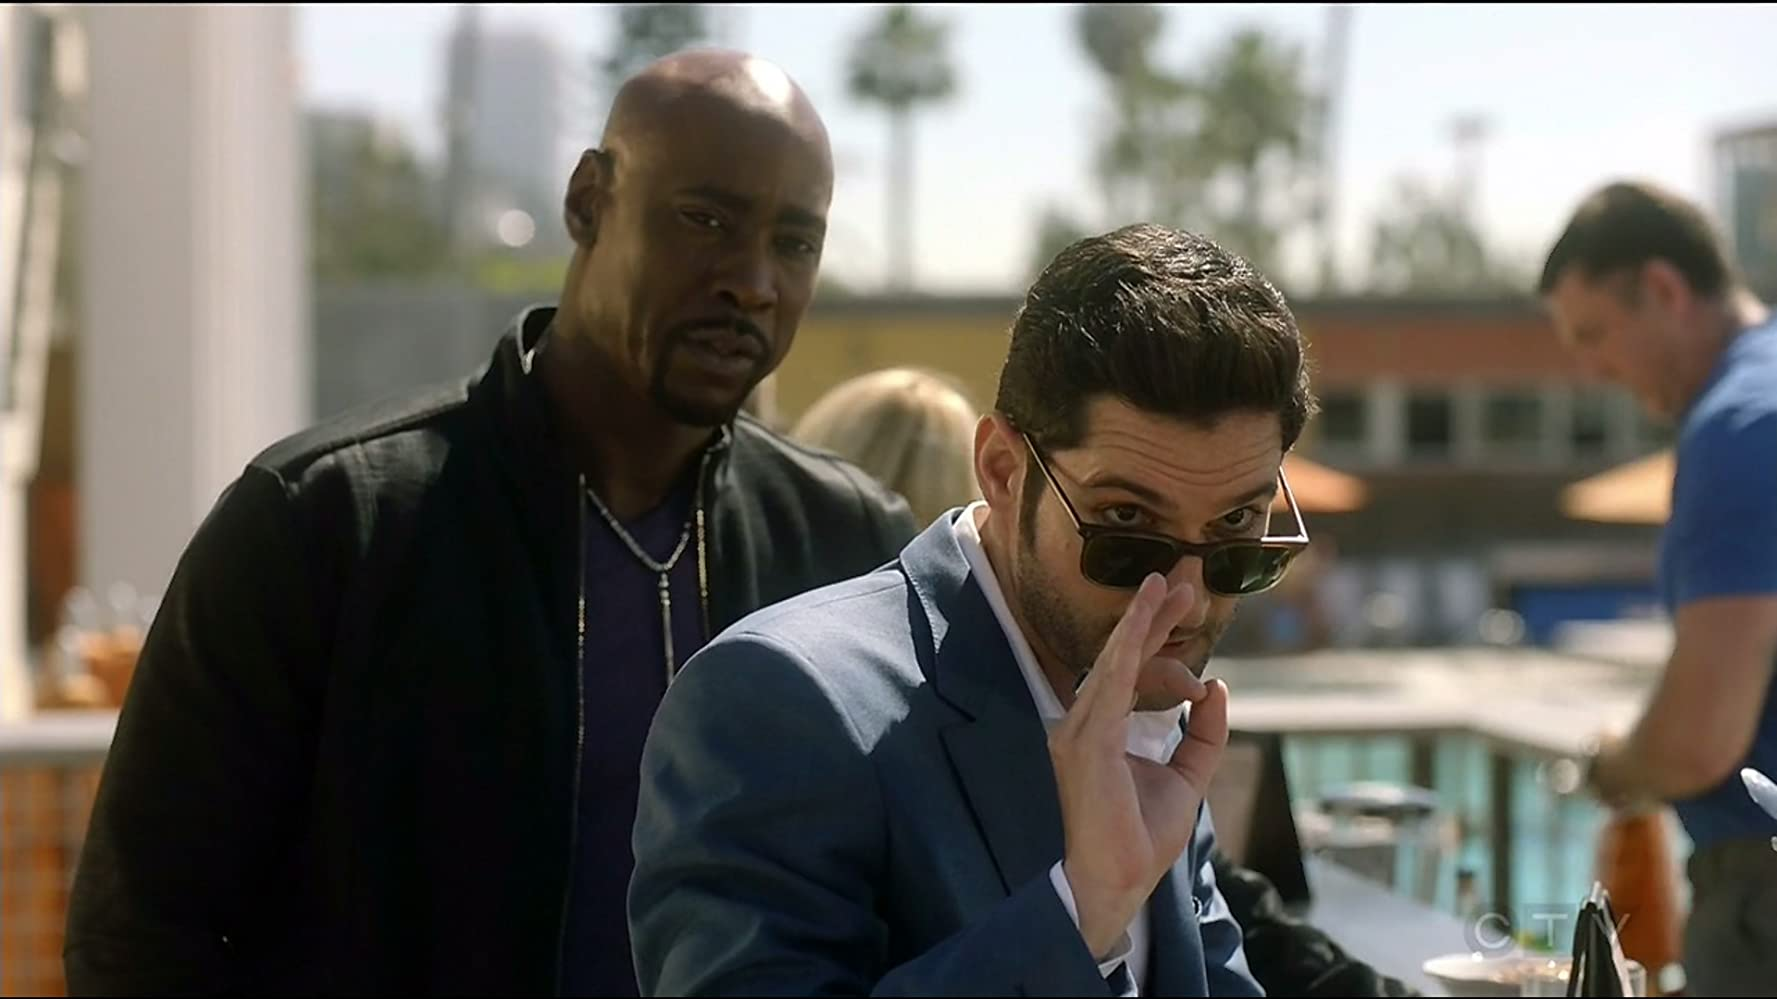 Lucifer S02E17 – Sympathy for the Goddess